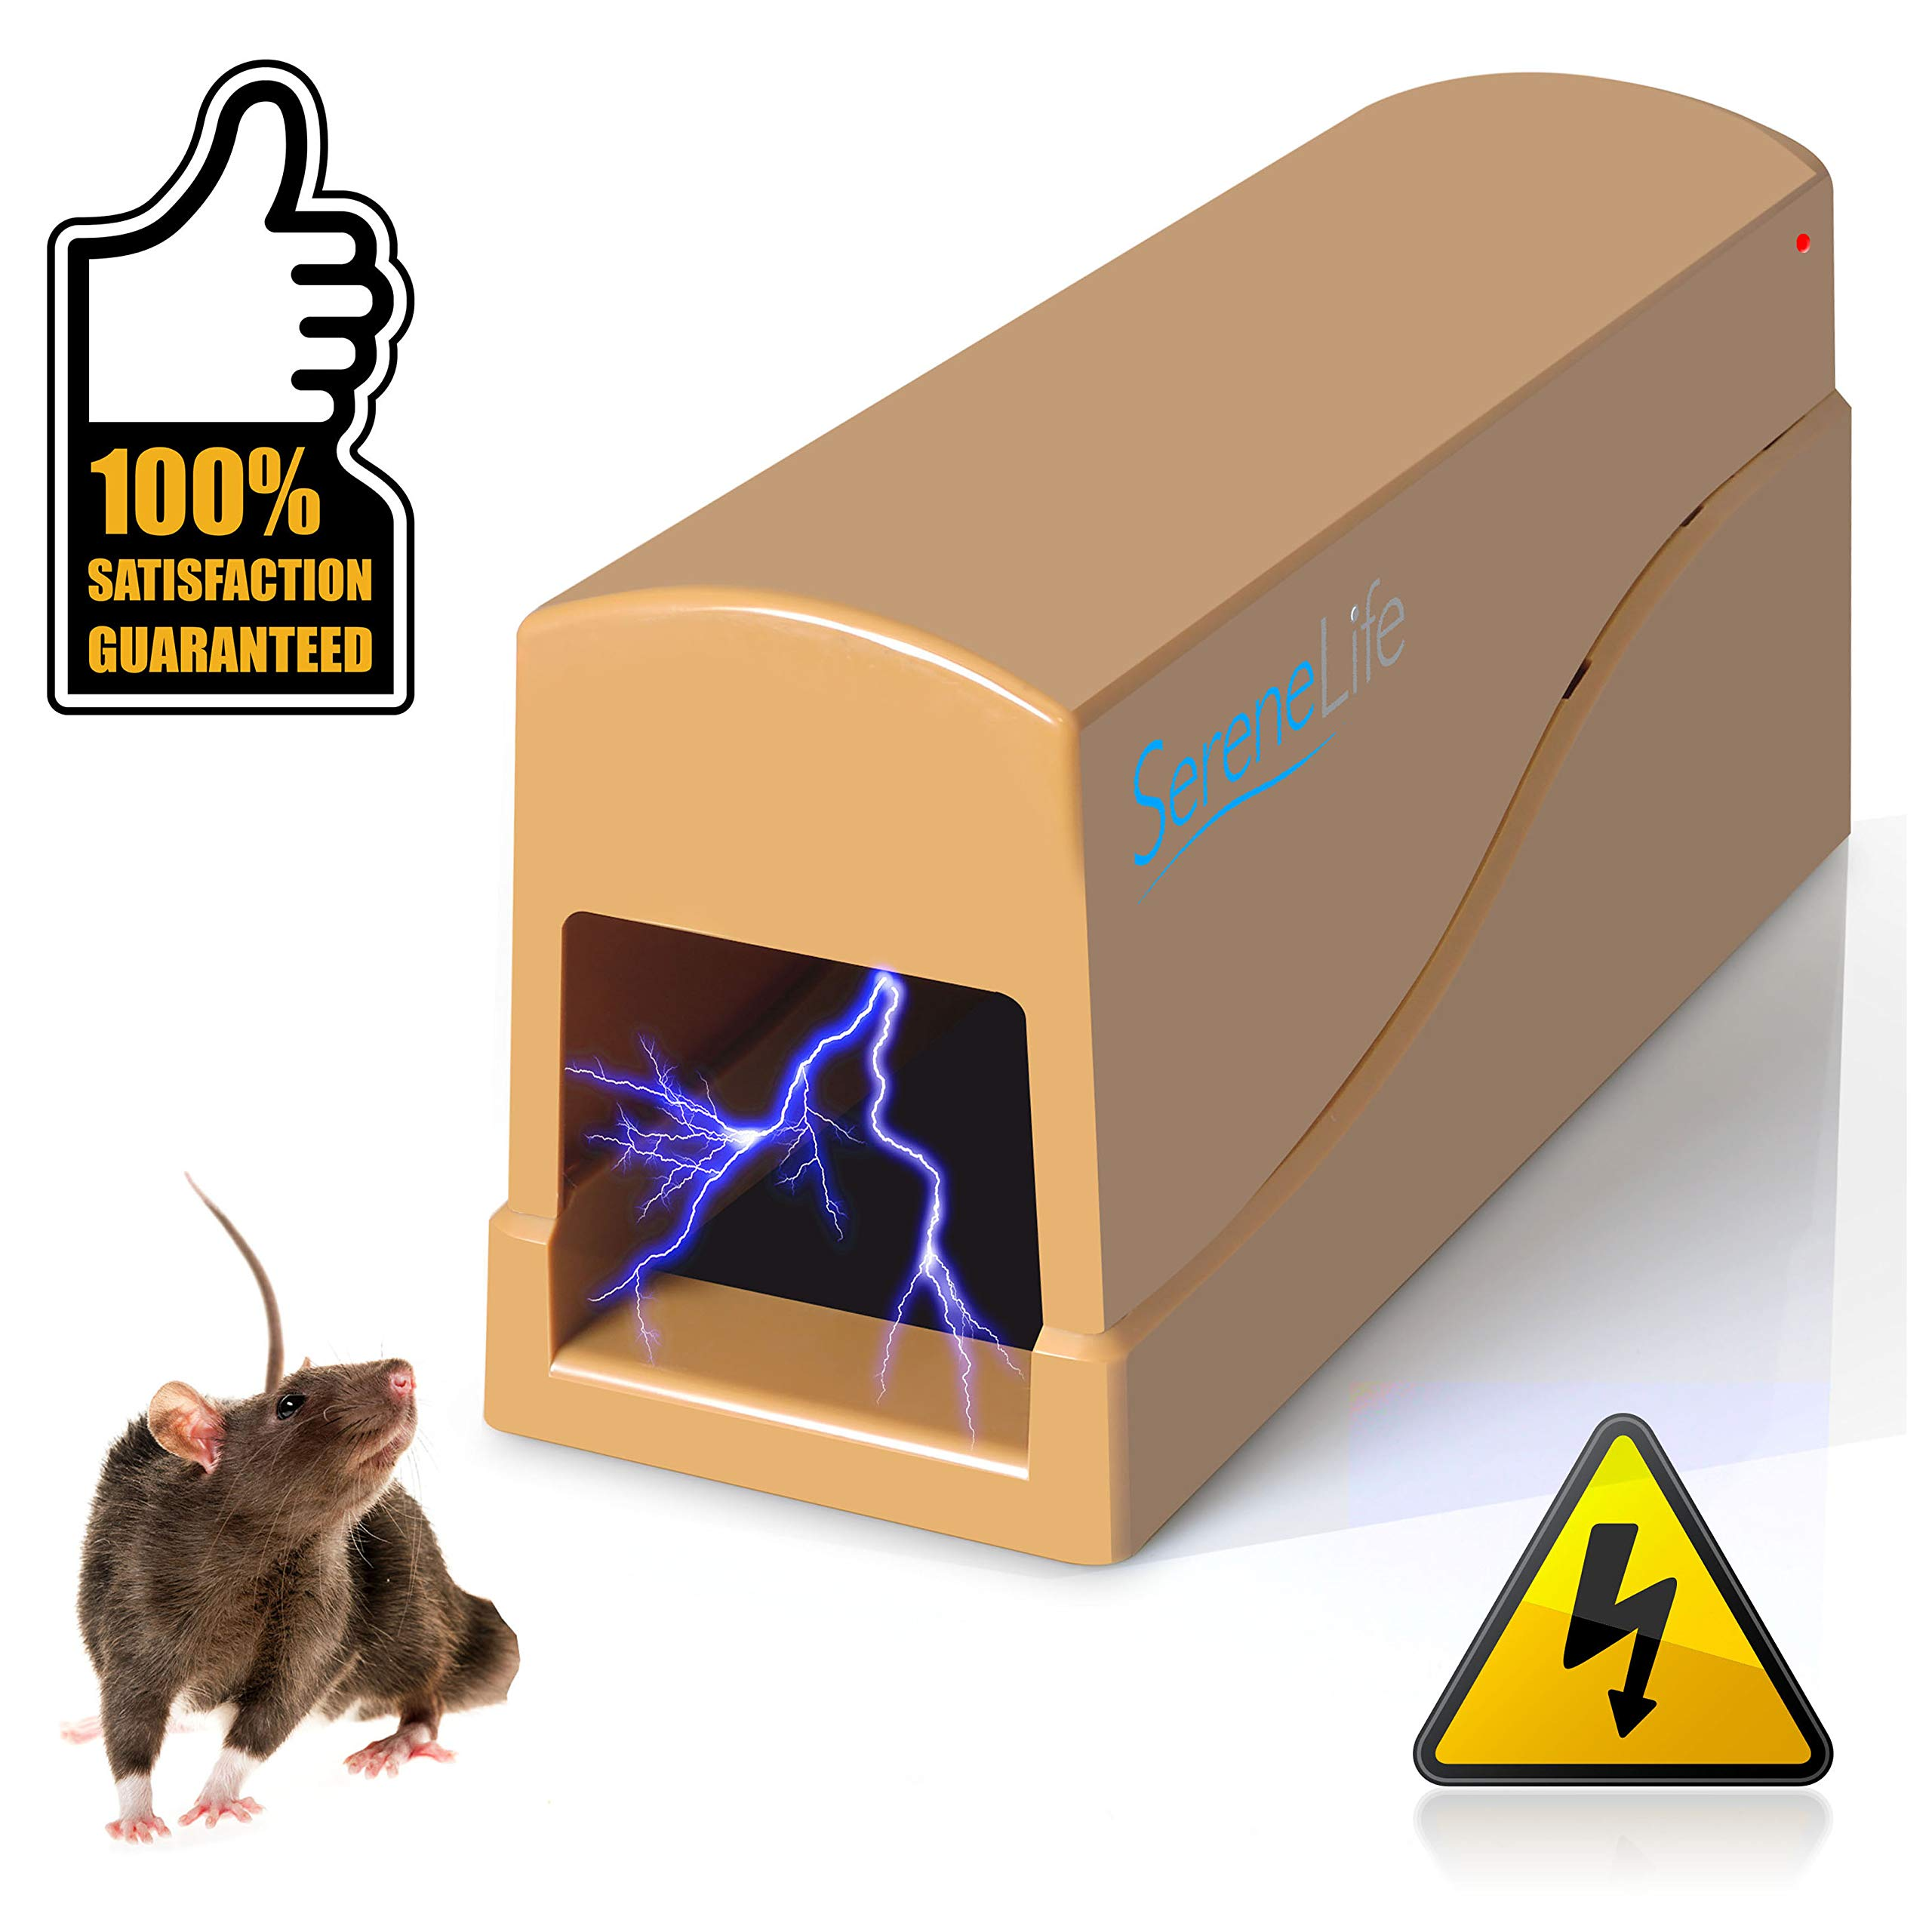 SereneLife Electronic Humane Mouse Trap Zapper - Indoor Safe Electric and Battery Powered Rat Bait Zap Traps w/Metal Plates, LED Light, Safely Kill Small Rodent Rats Mice Squirrel Chipmunk PSLEMK5 by SereneLife